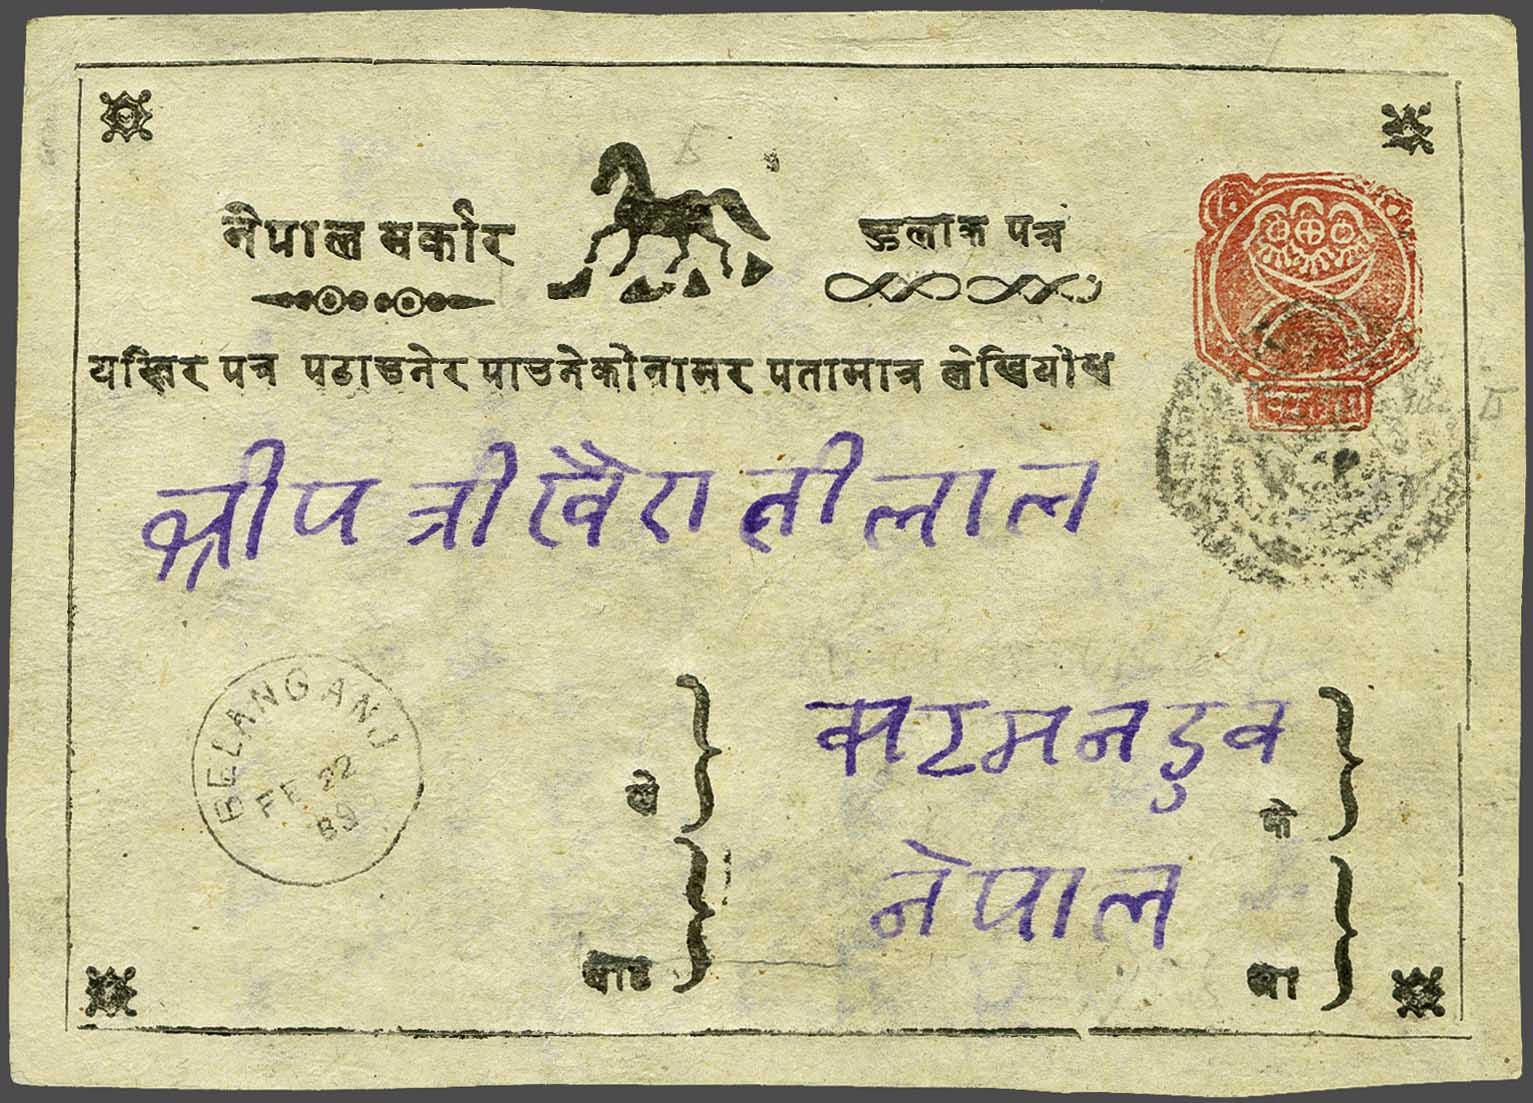 Lot 11 - Great Britain and former colonies Nepal -  Corinphila Veilingen Auction 245-246 Day 1 - Nepal - The Dick van der Wateren Collection, Foreign countries - Single lots, Picture postcards